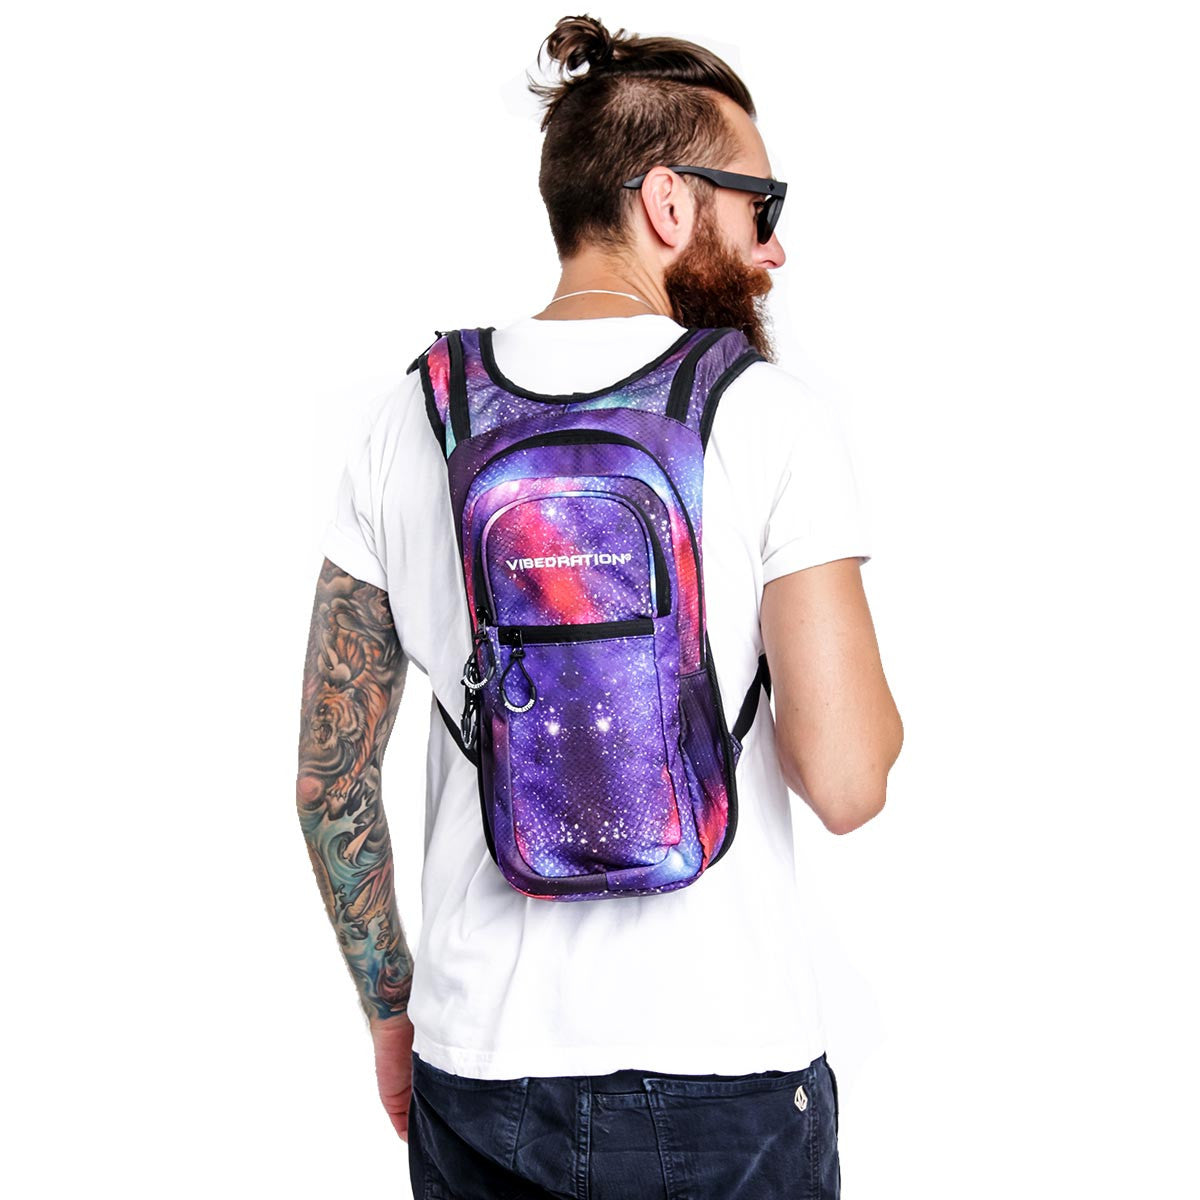 Galaxy water pack on male